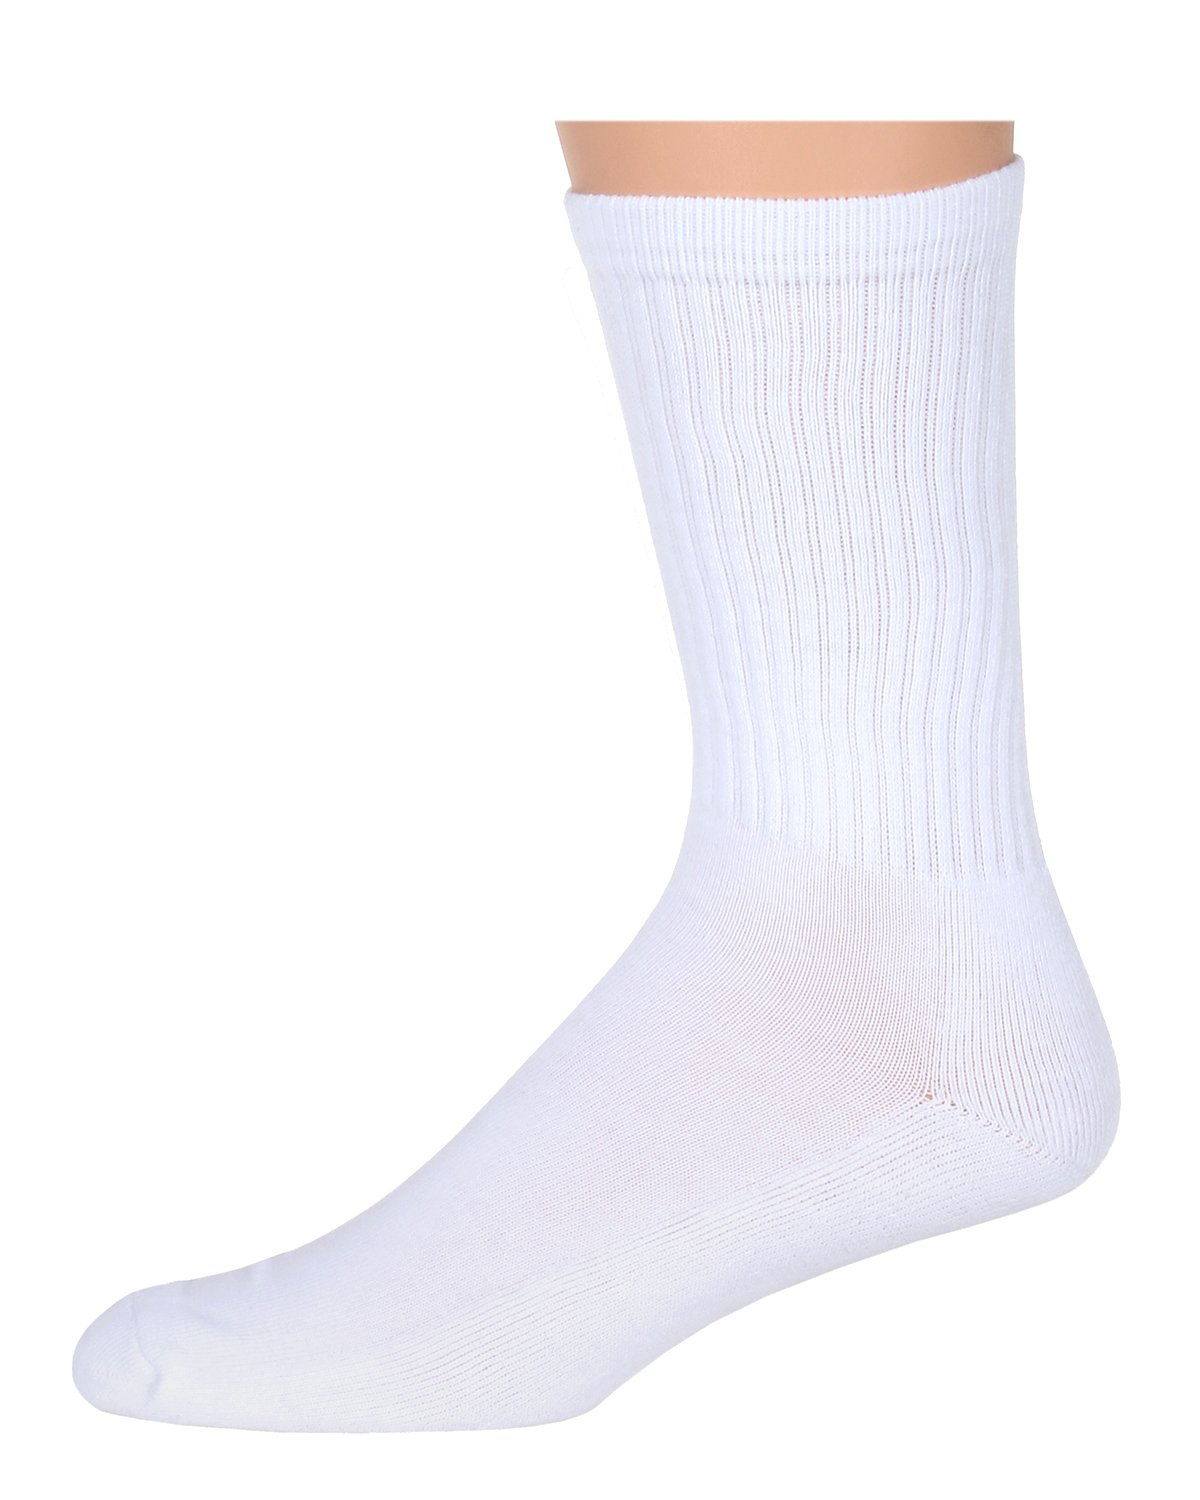 BLANK WHITE SUBLIMATION CREW SOCKS FOR PRINTABLE SUBREADY IN